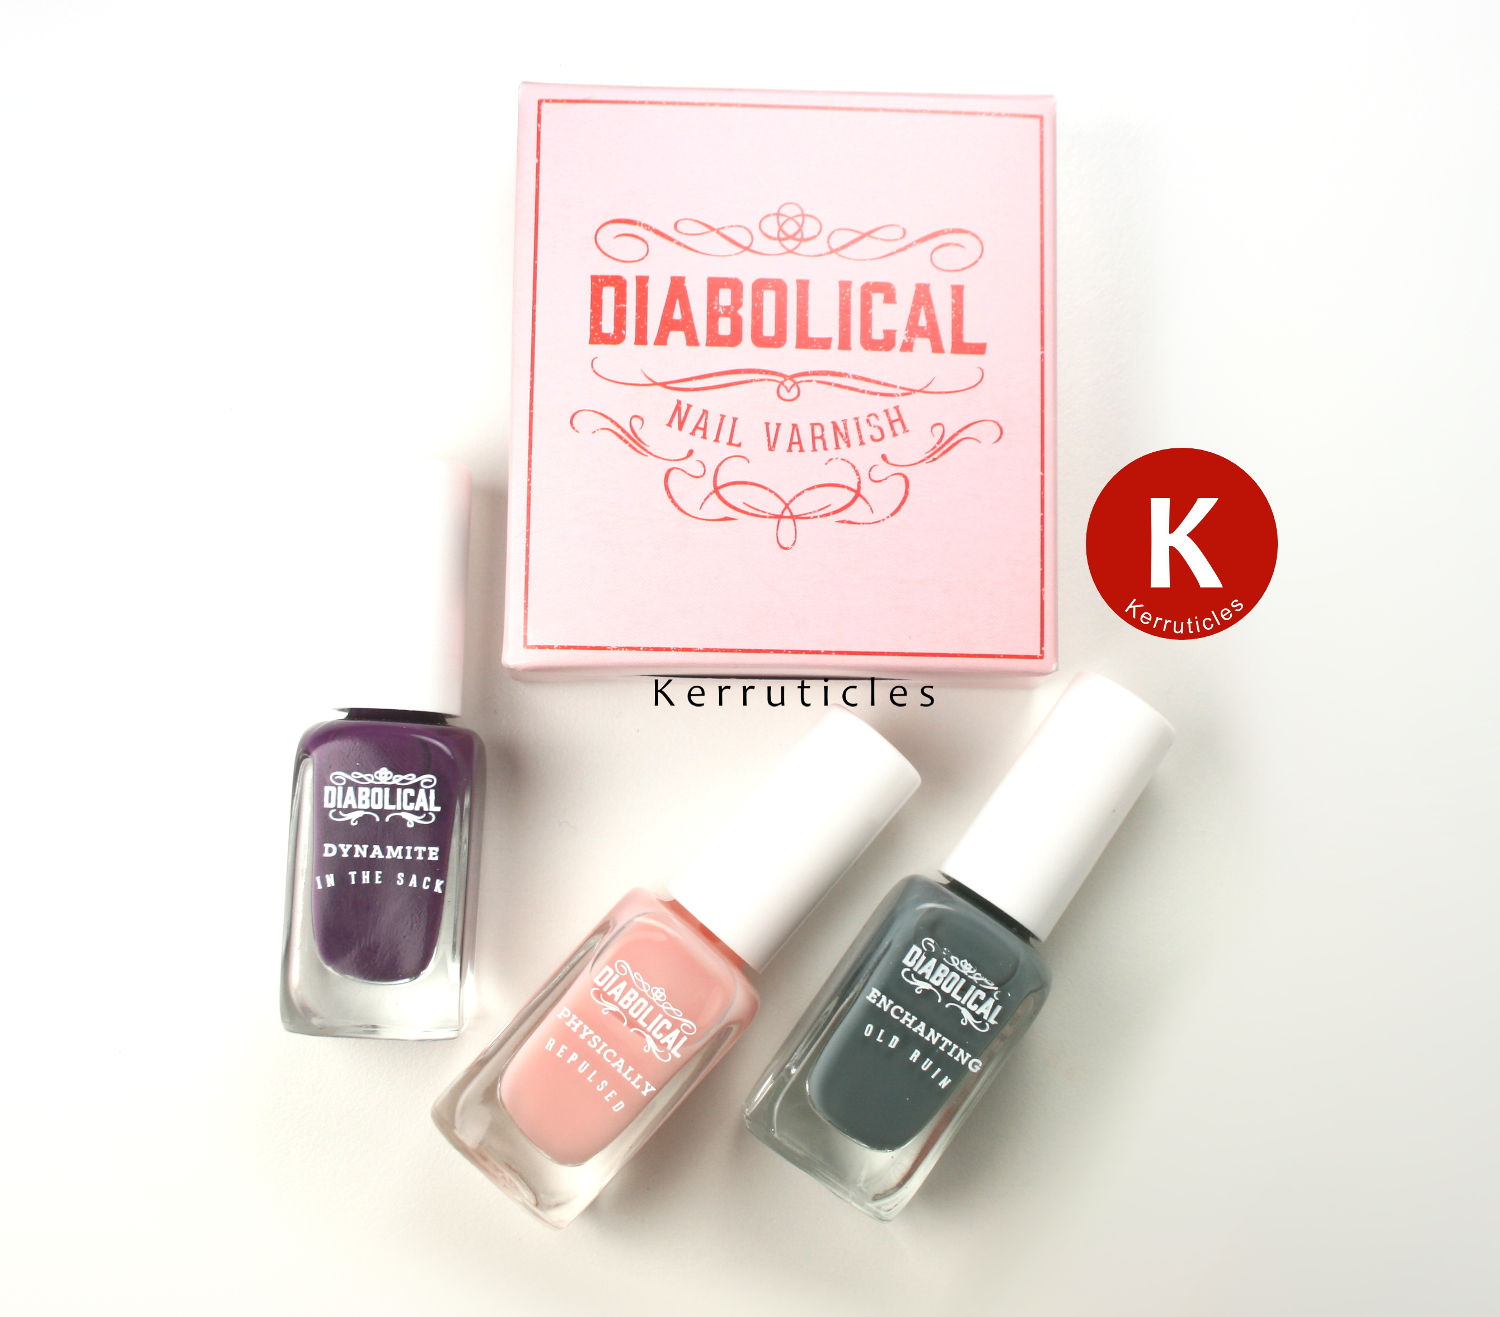 Diabolical Nail Varnish set from Firebox